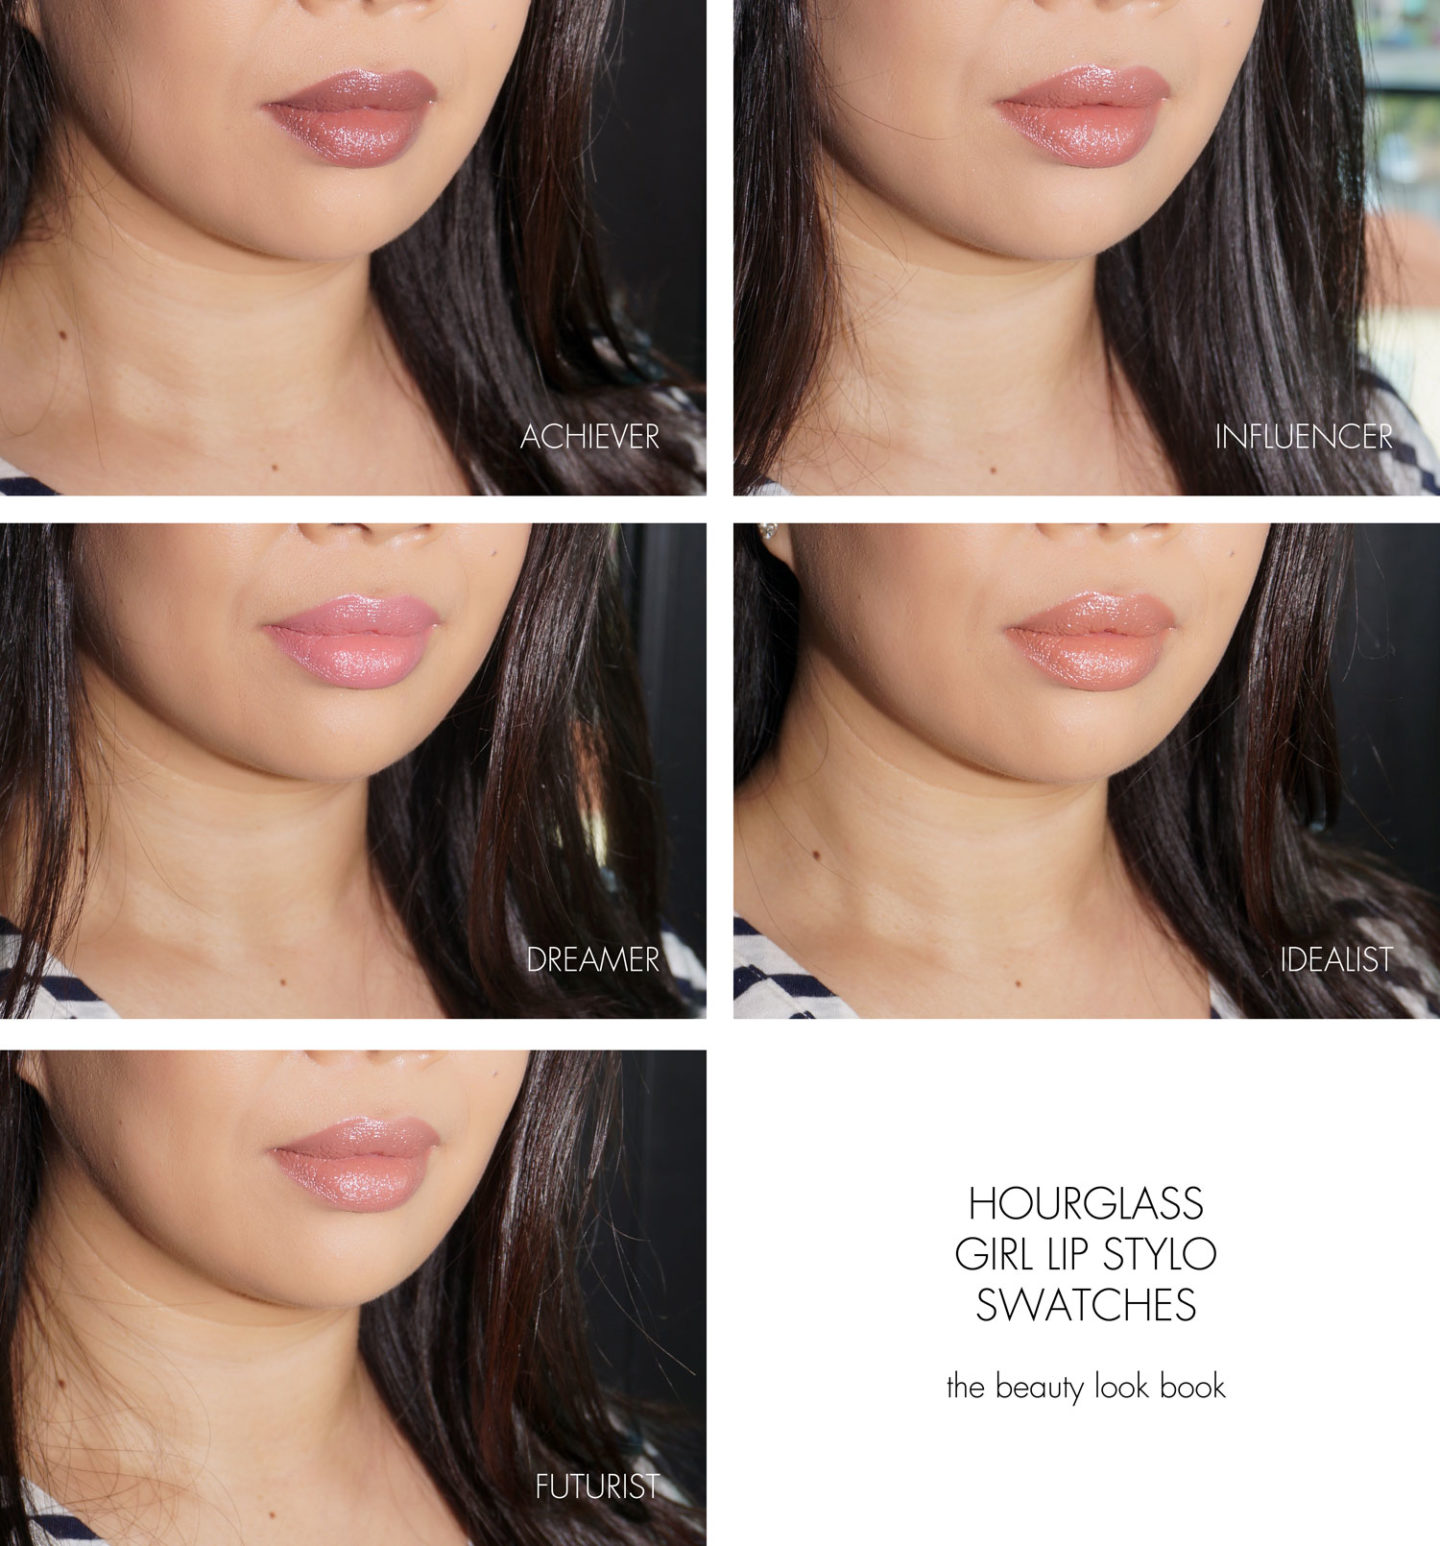 Hourglass GIRL Lip Stylo Achiever, Influencer, Dreamer, Idealist, Futurist | The Beauty Look Book